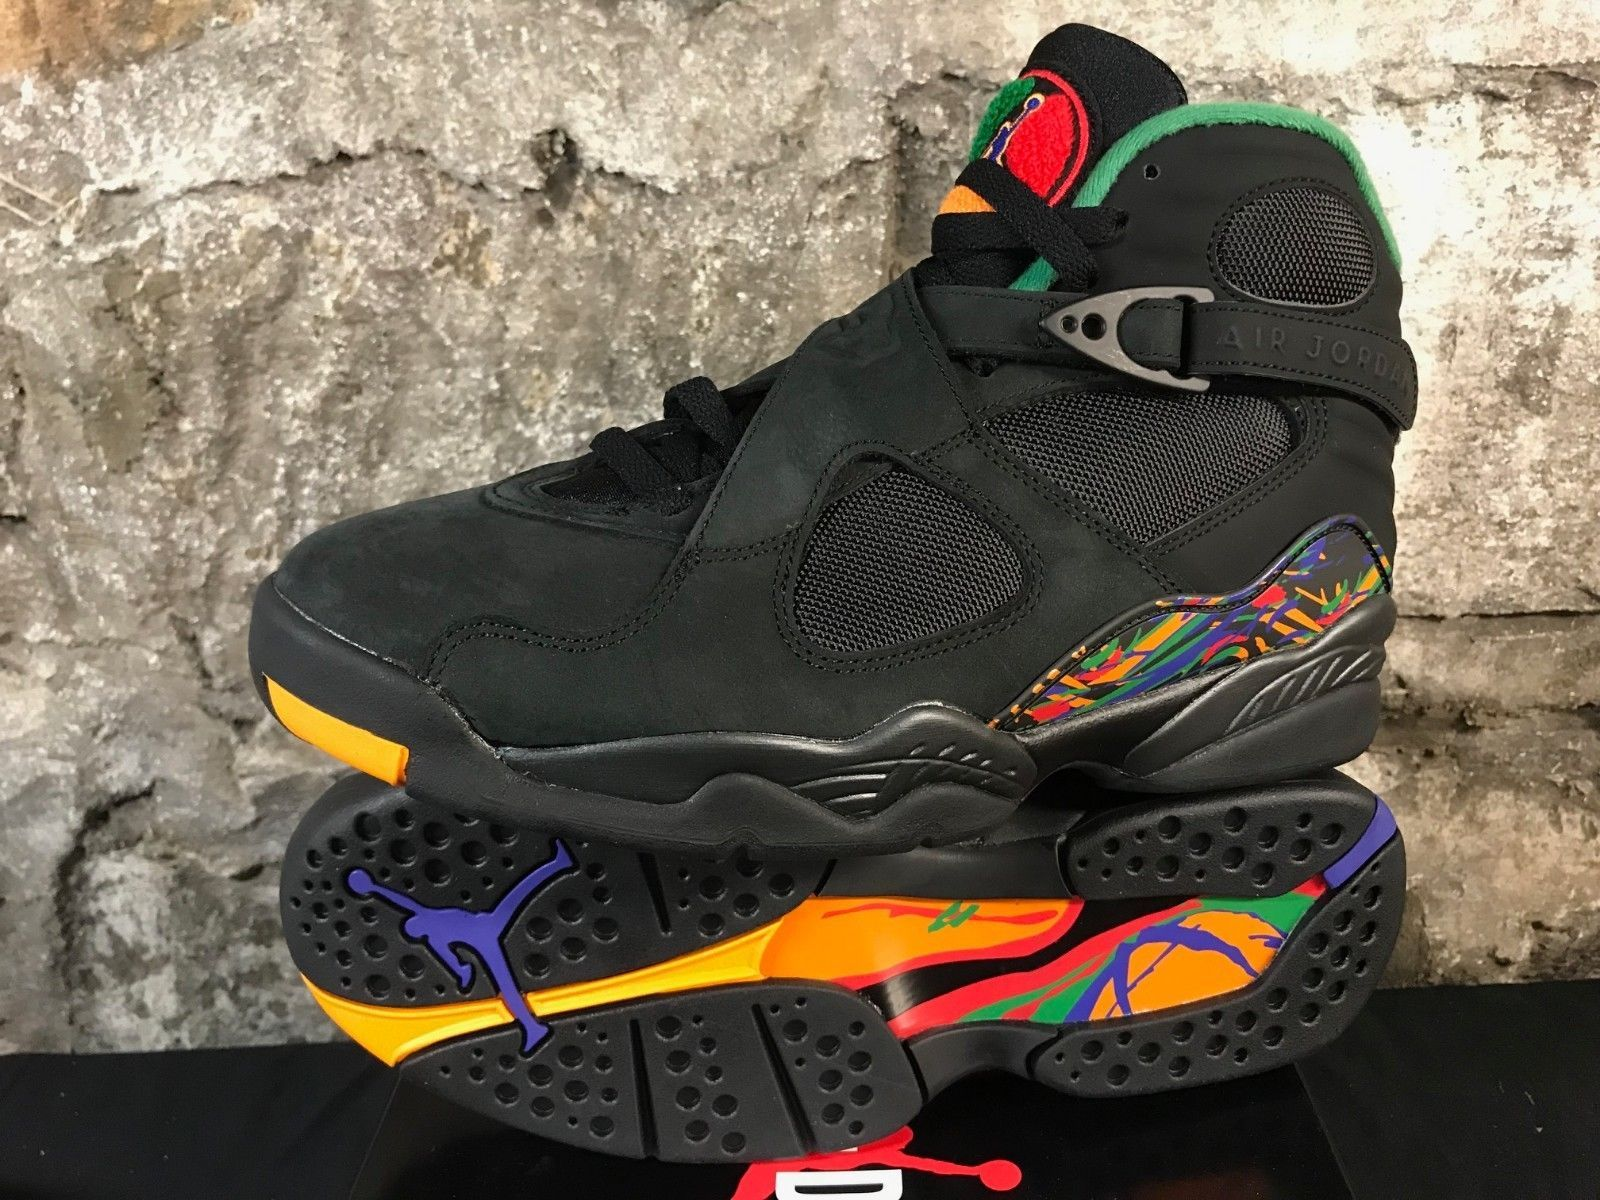 56ffac99d1645 AIR JORDAN 8 RETRO 305381 004 TINKER Black Concord Aloe Verde Men's SHIPS  NOW